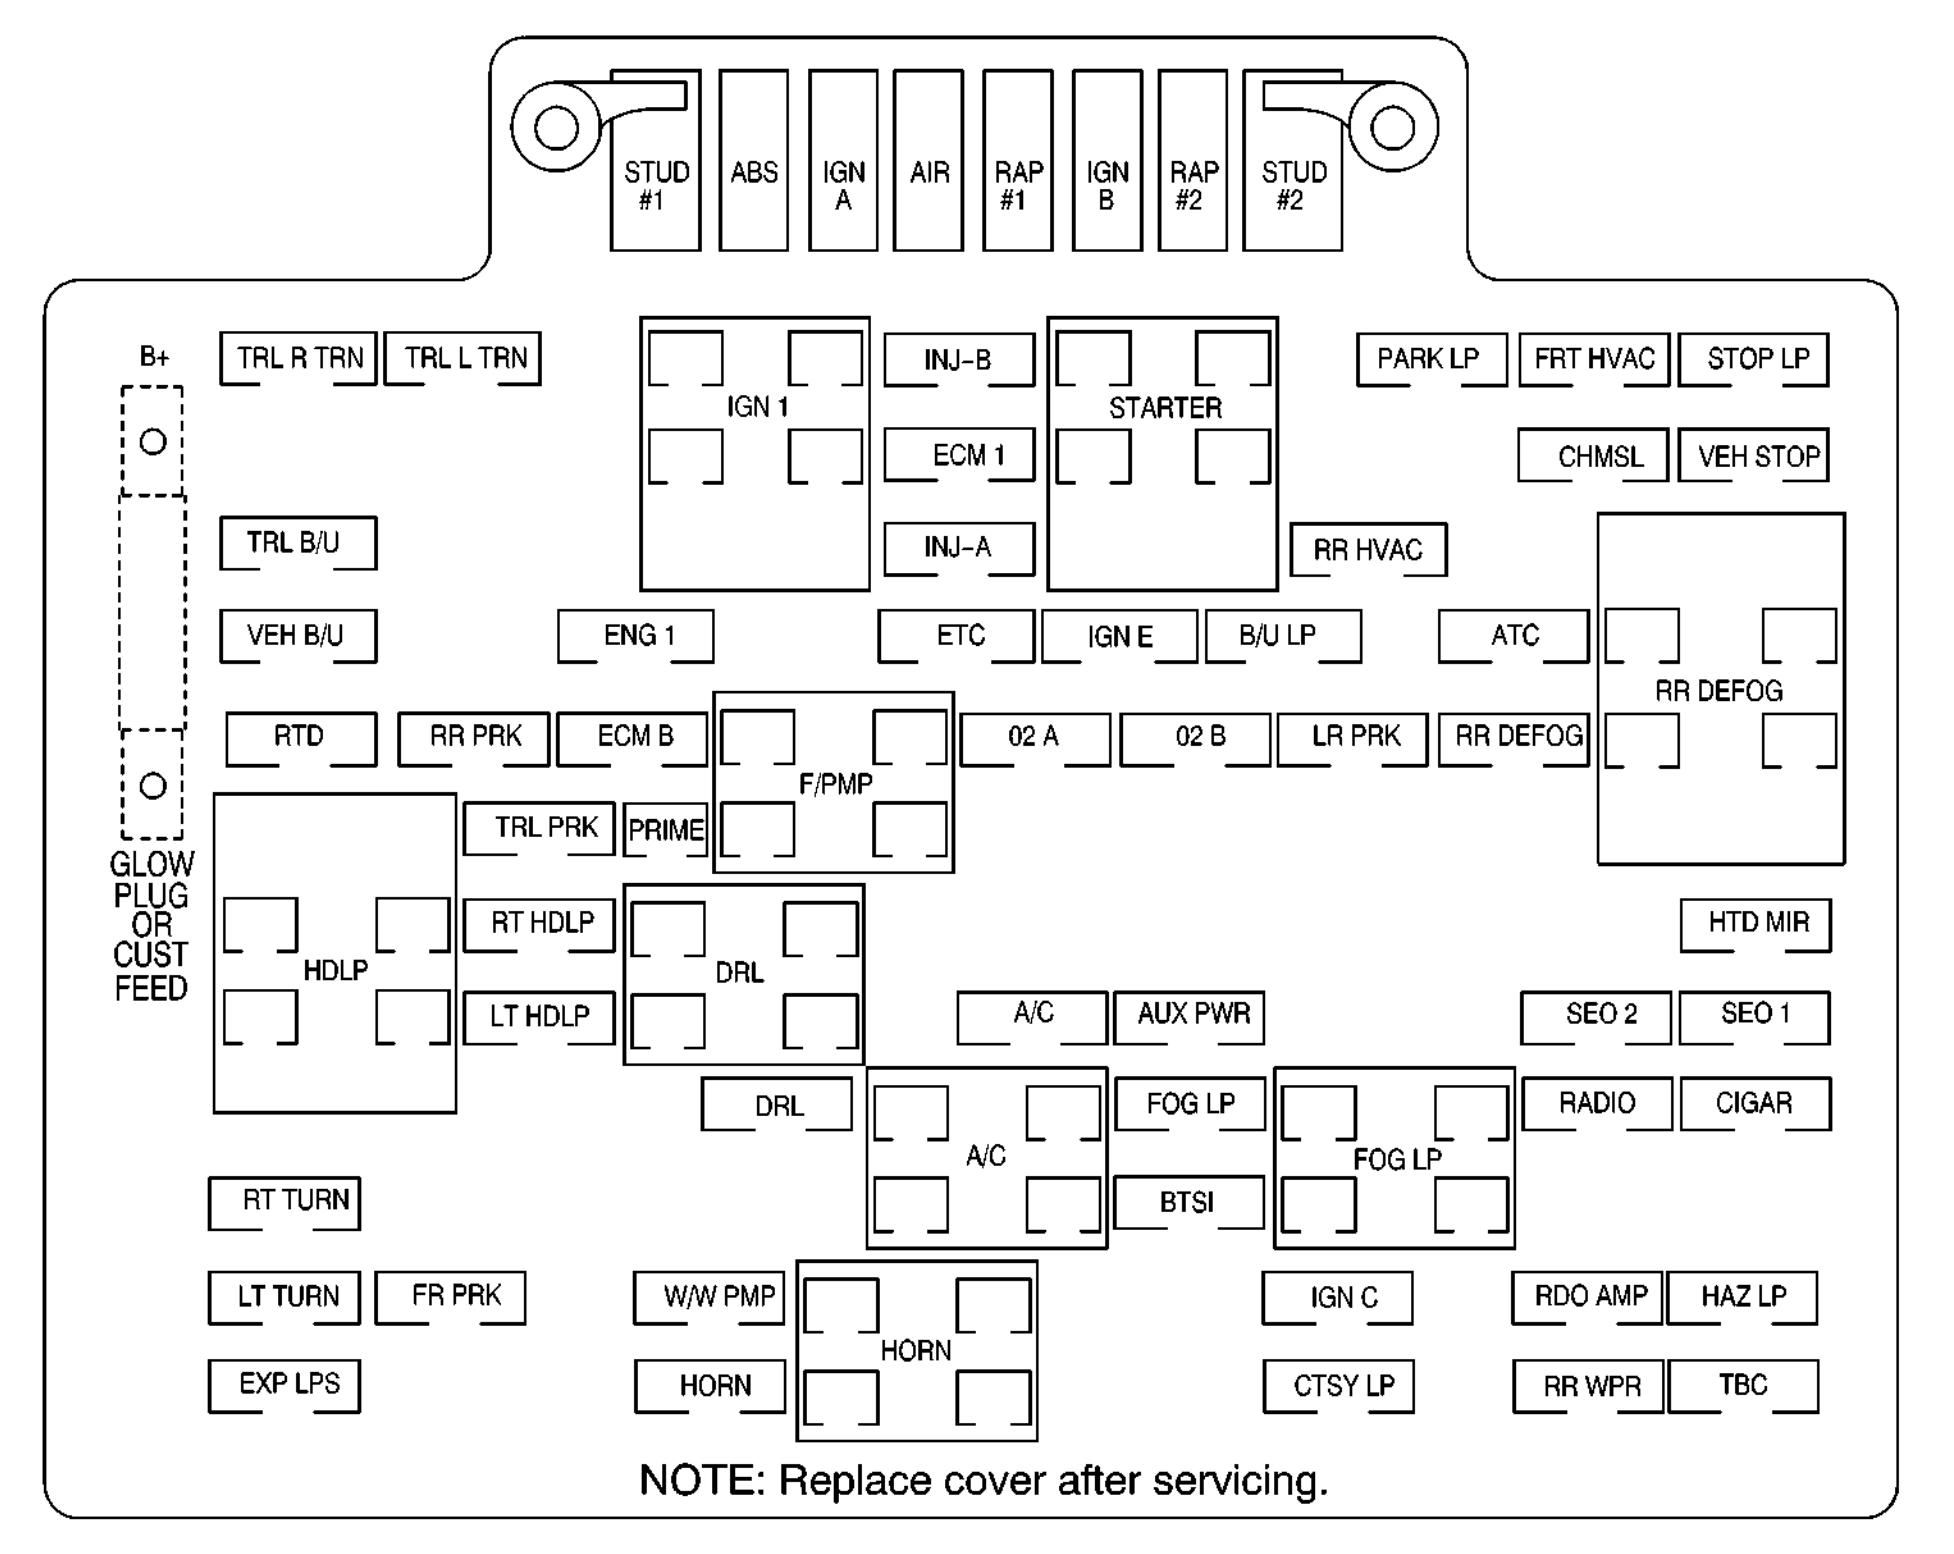 hight resolution of 2002 chevy tahoe abs fuse box diagram wiring diagram perfomance 2002 silverado fuse box diagram wiring